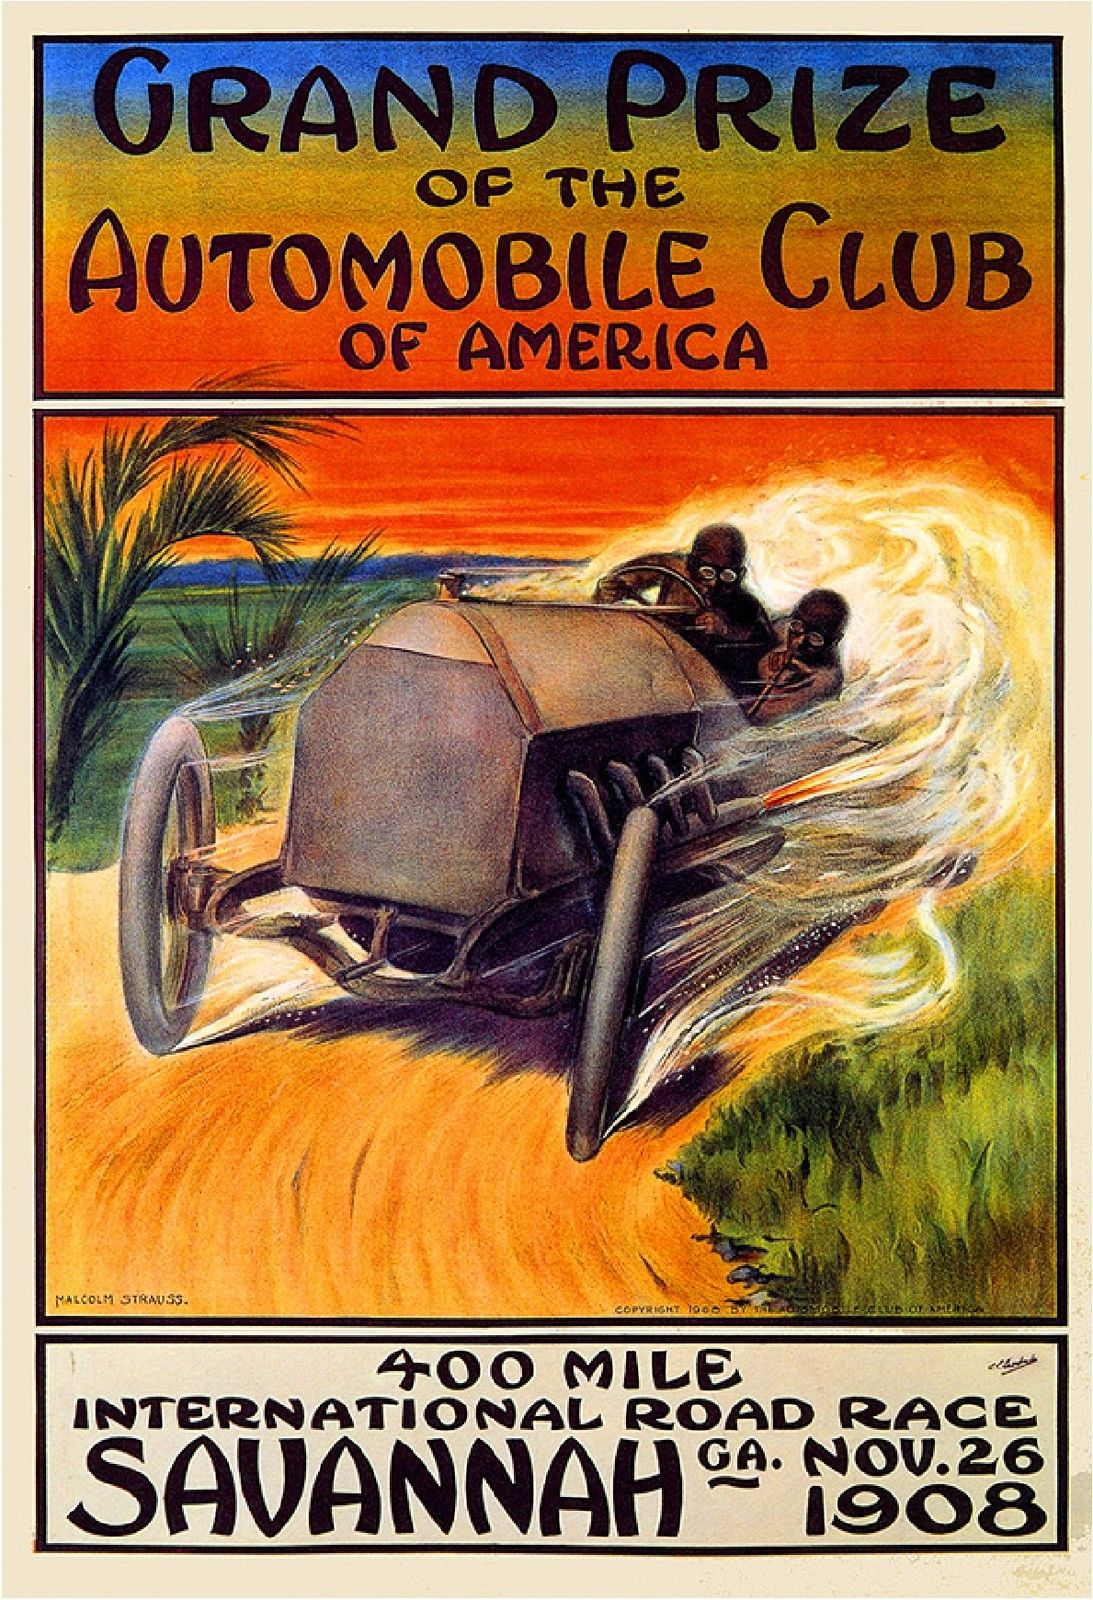 1906 Savannah Georgia Automobile Race United States Travel Advertisement Poster